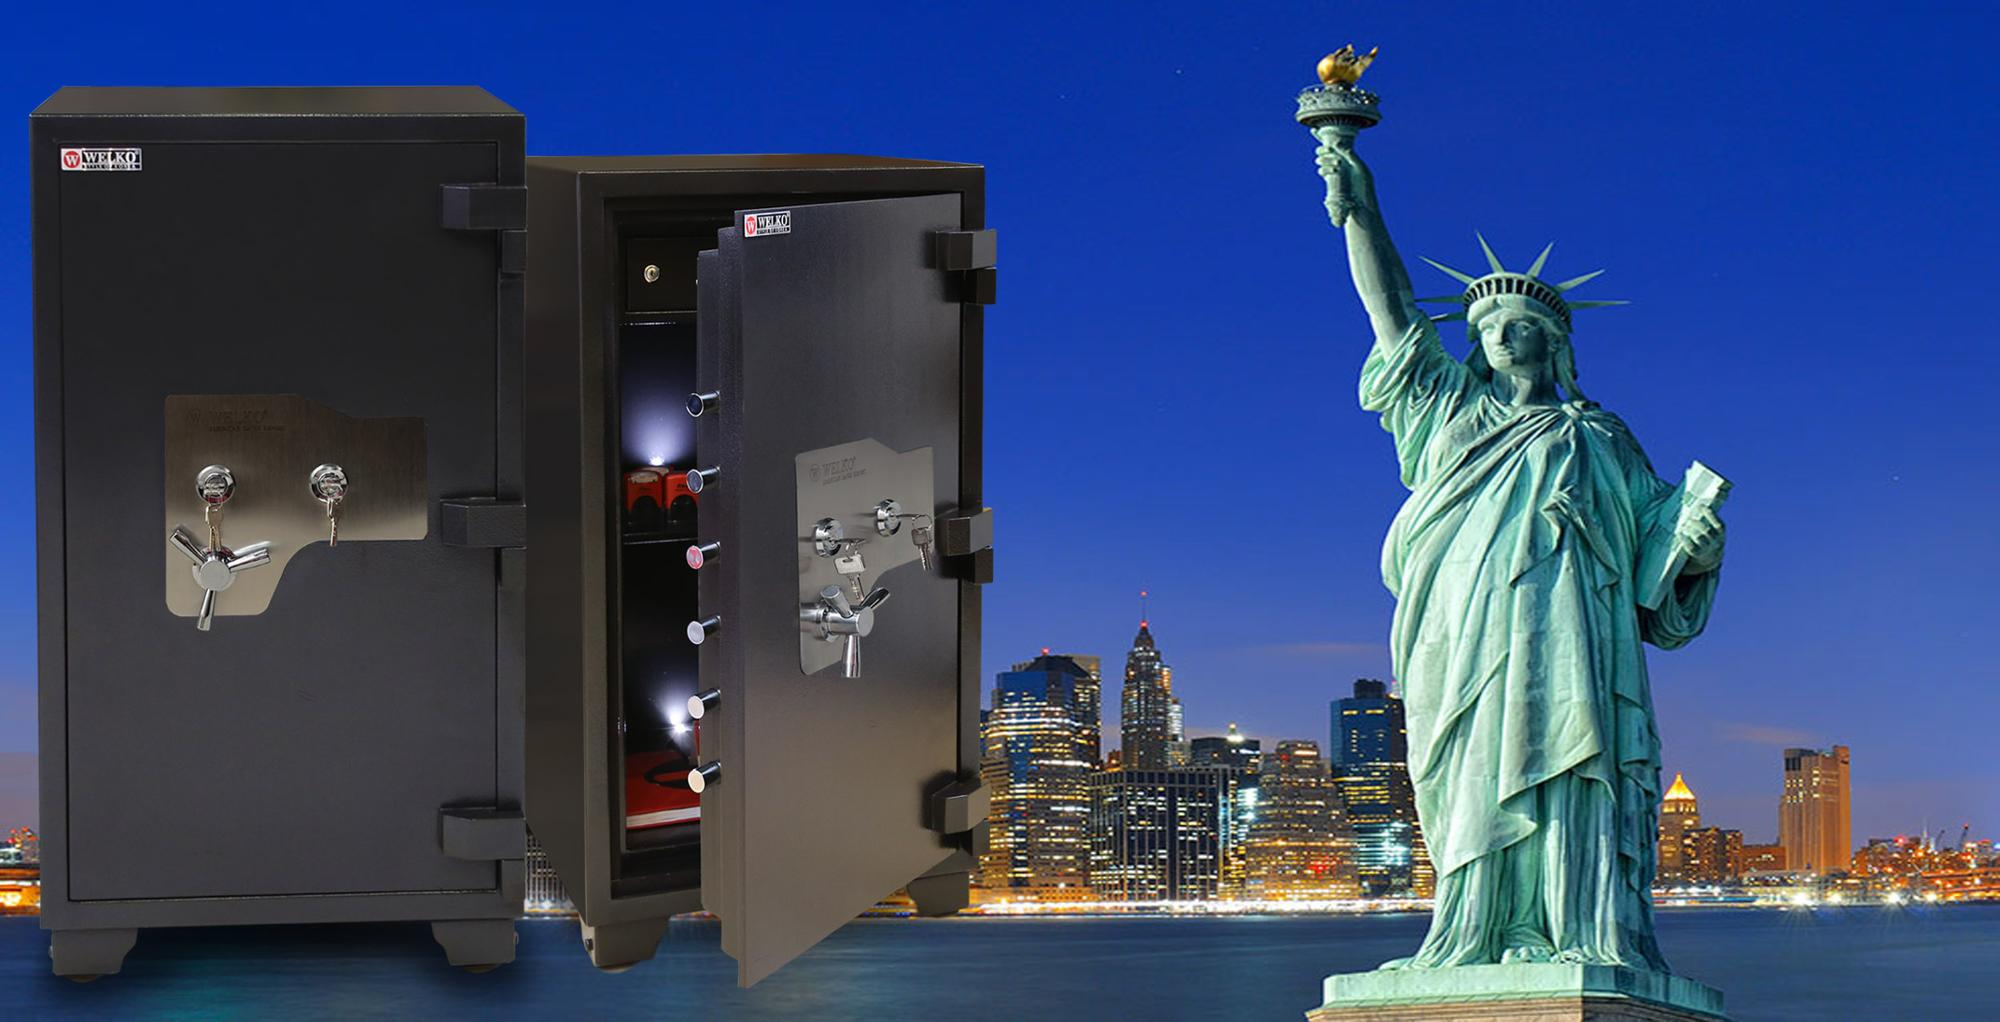 New Deling Security Cash Money Camera Key Electronic Safes - Newest design - High locking technology - From WELKO safes